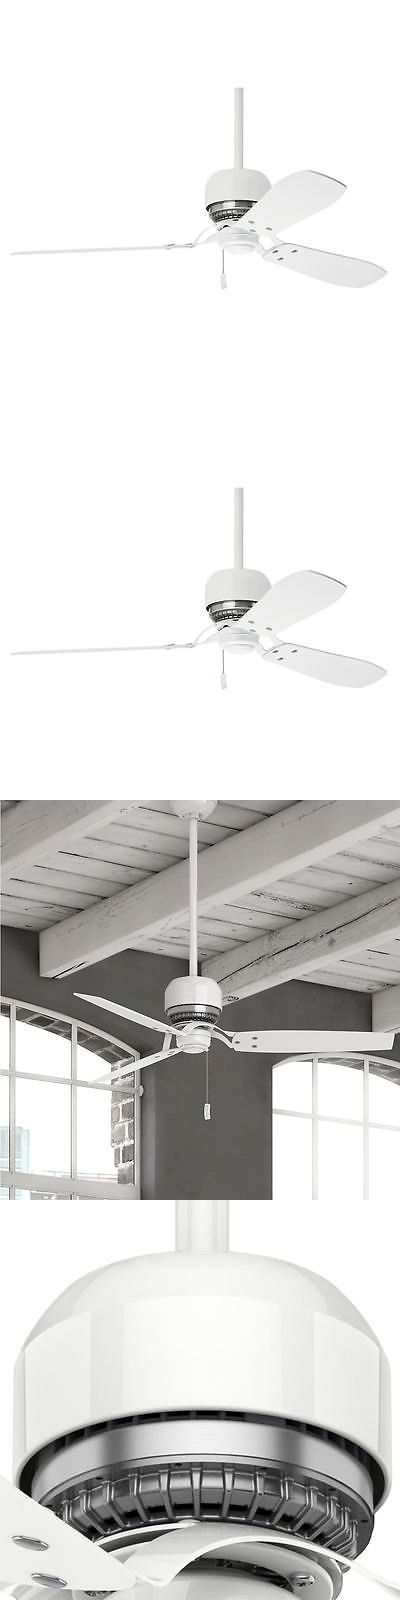 Ceiling Fans 176937: Casablanca 52-Inch Tribeca Snow White 3-Blade Ceiling Fan -> BUY IT NOW ONLY: $255.99 on eBay!